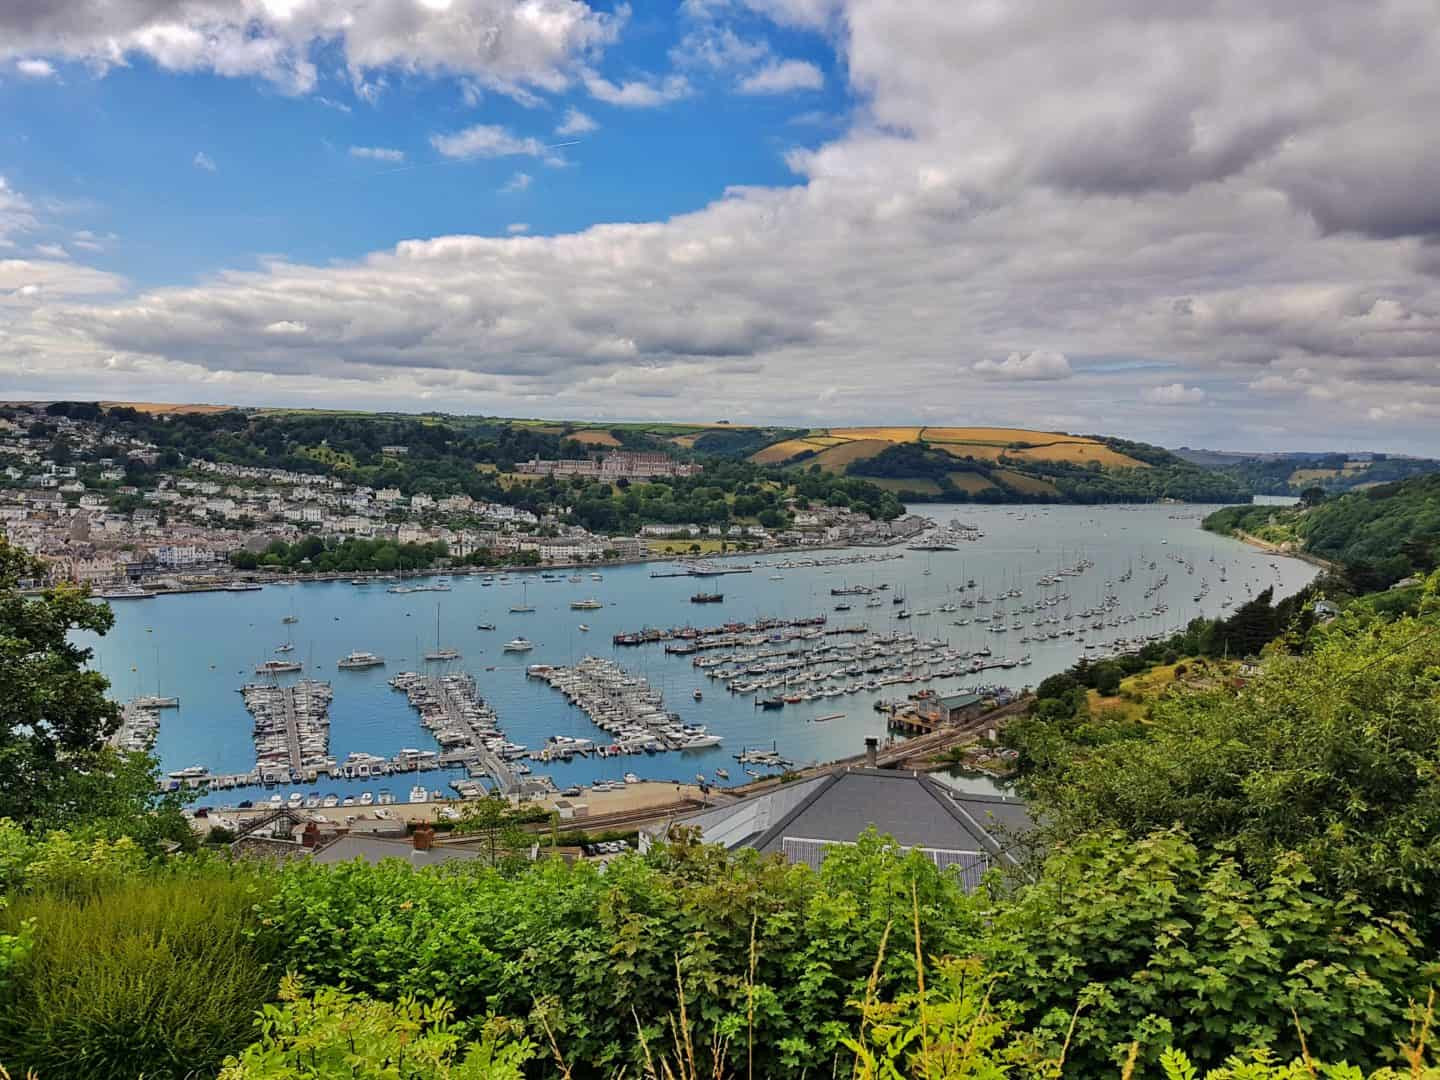 view down over Dartmouth across harbour with boats